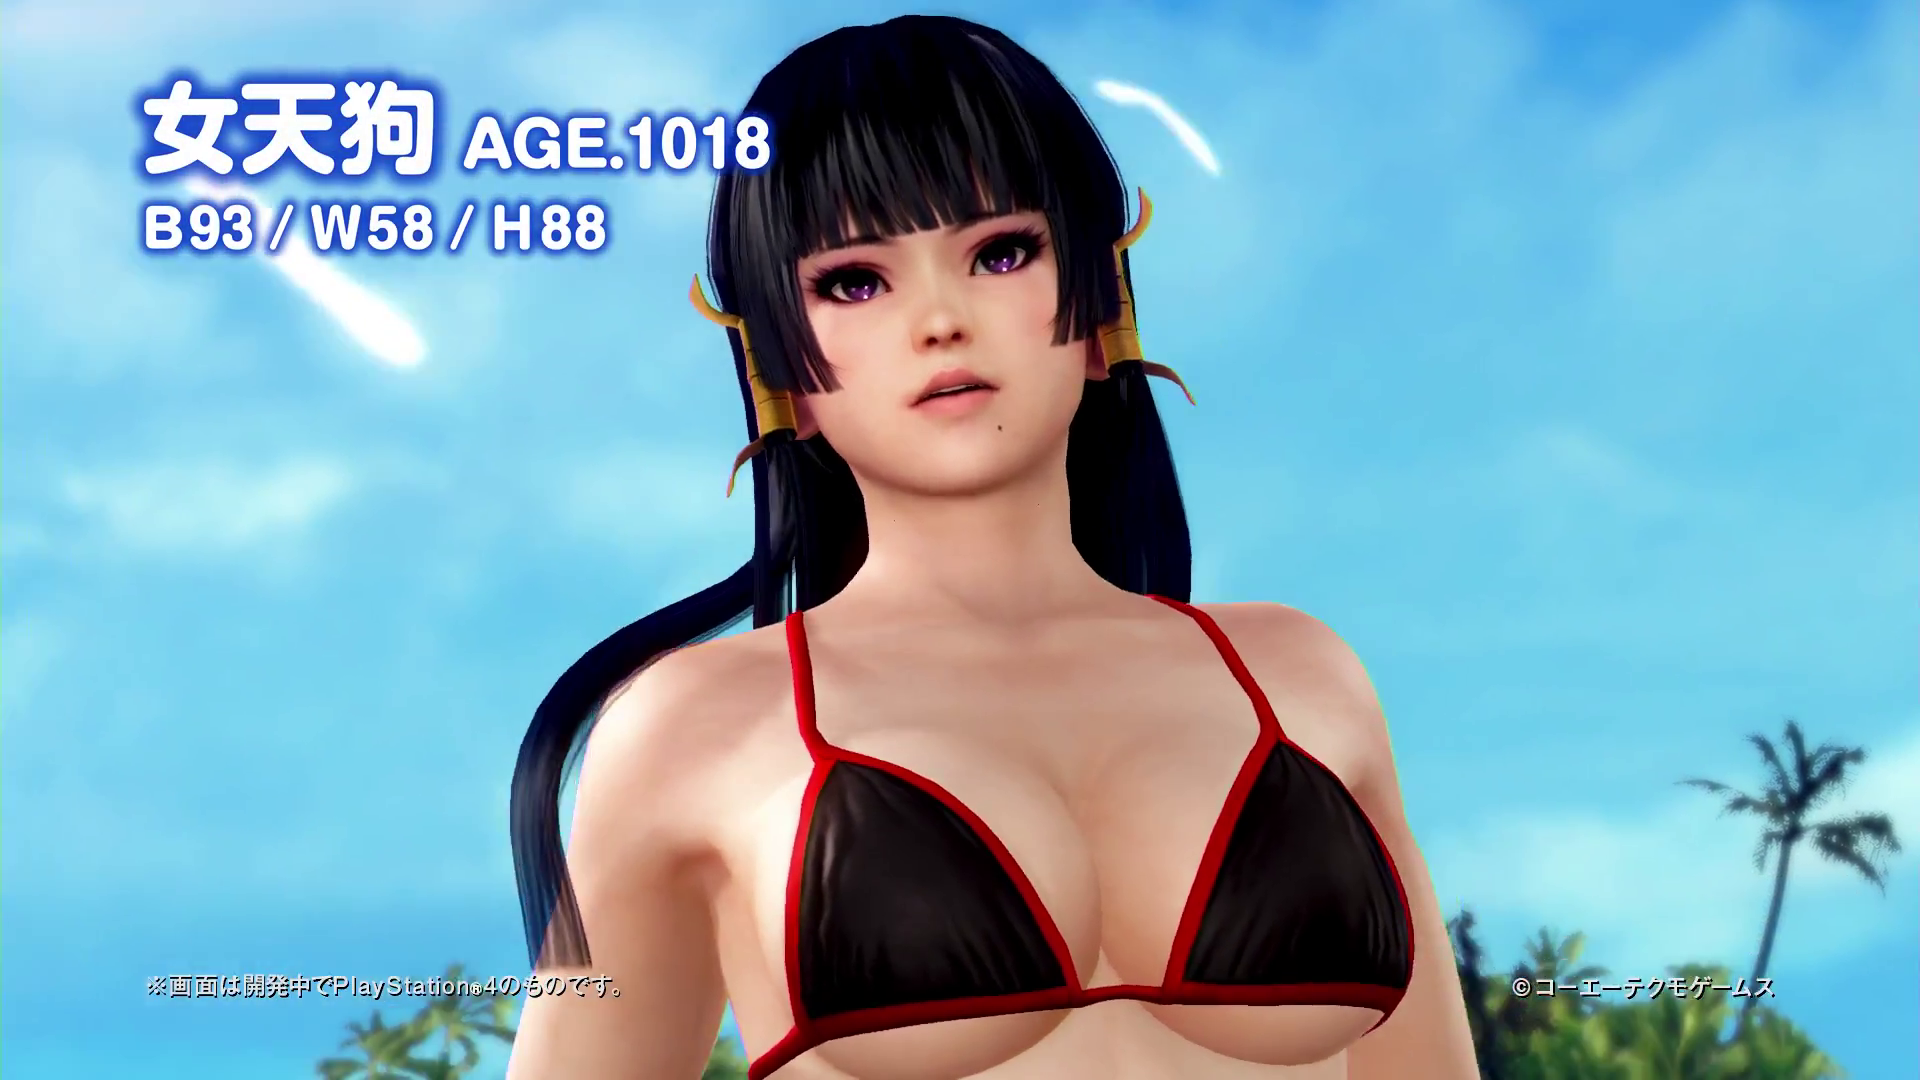 vlcsnap-2016-02-29-15h17m53s987 Dead or Alive Xtreme 3 Nyotengu Character Trailer